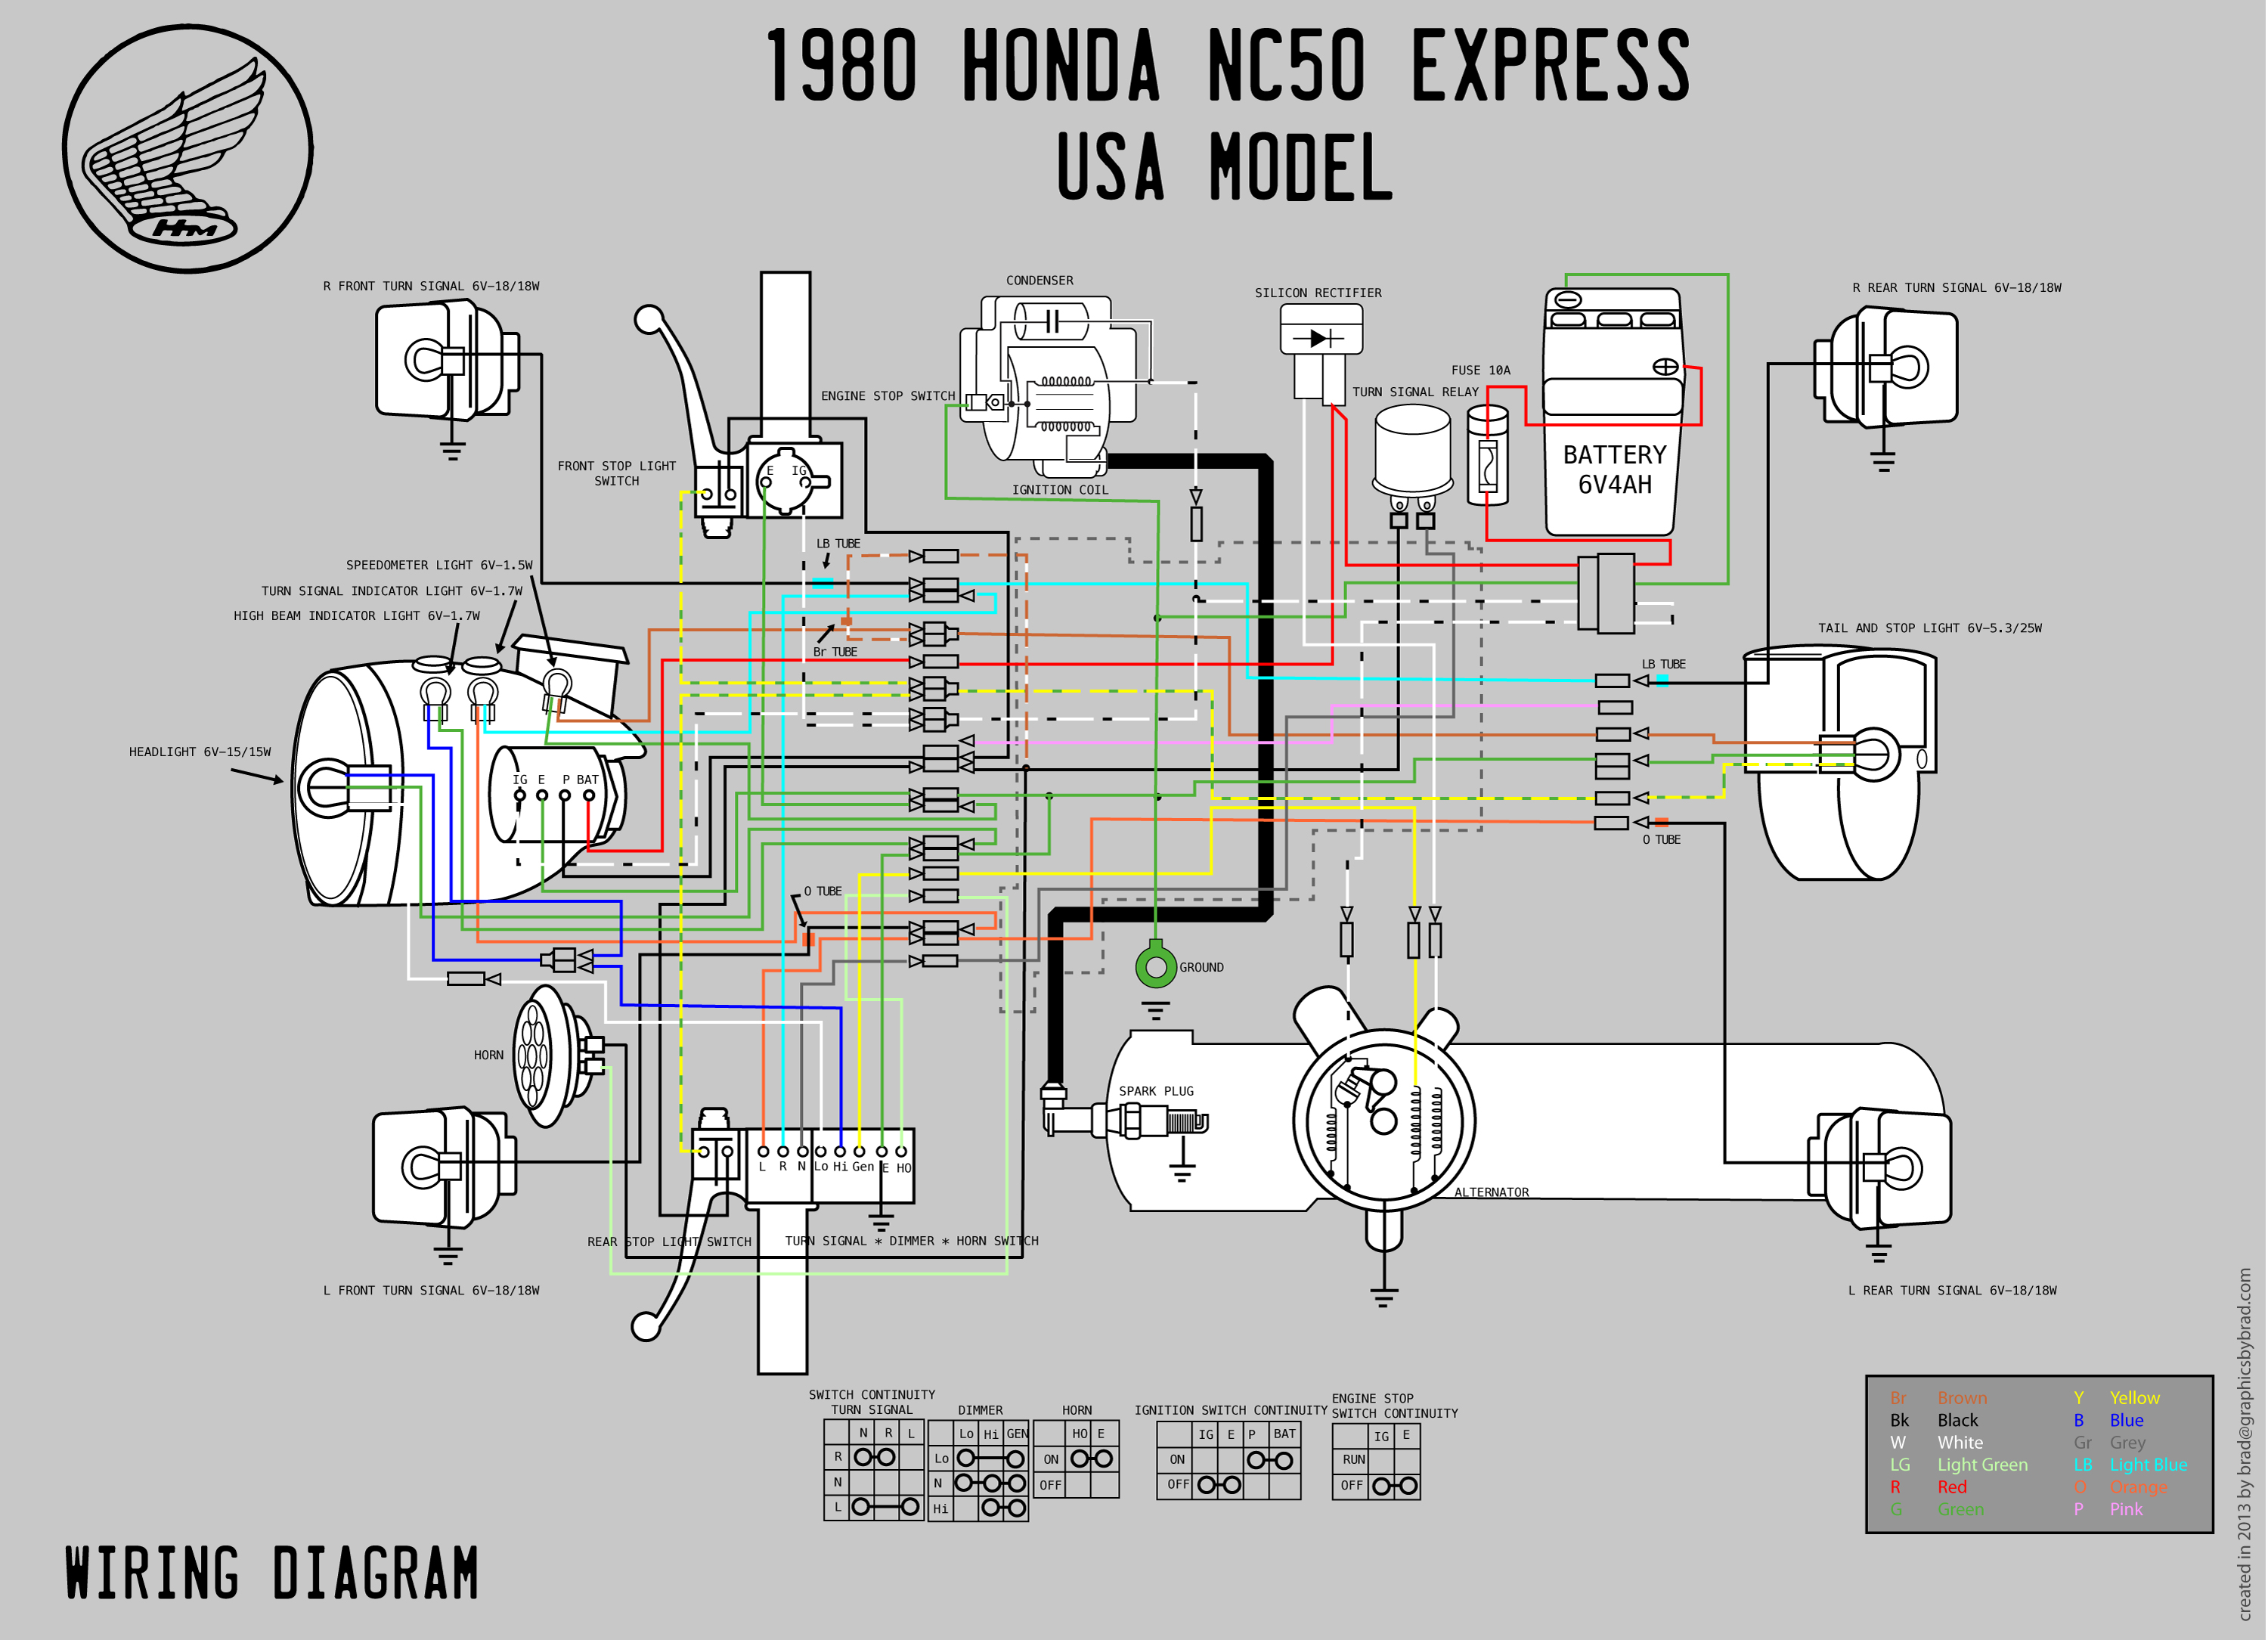 Re: 1980 Honda Express NC50 Build questions — Moped ArmyMoped Army